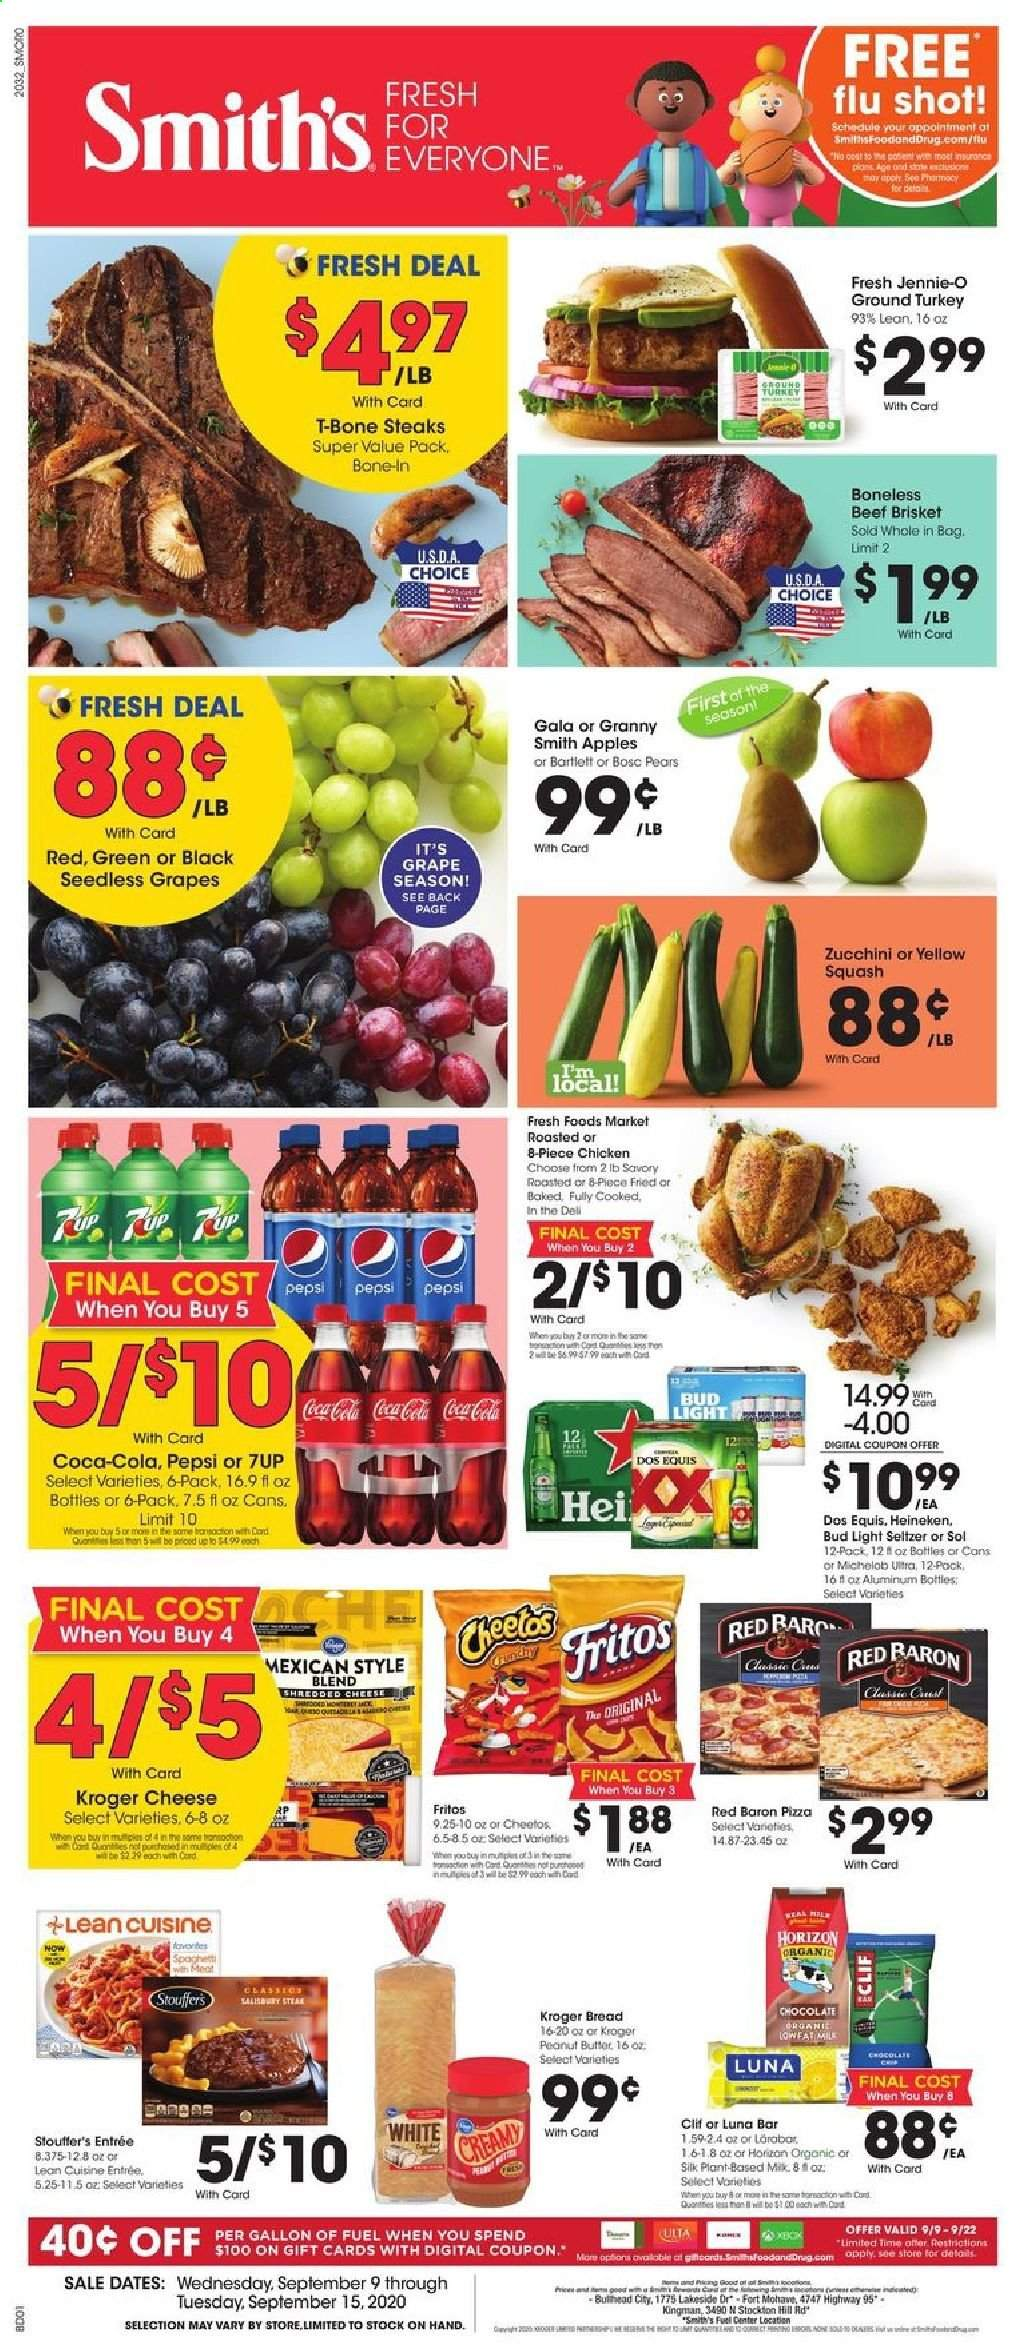 Smith's Flyer - 09.09.2020 - 09.15.2020 - Sales products - apples, beef meat, bread, Coca-Cola, Fritos, fuel, grapes, ground turkey, milk, seedless grapes, seltzer, shredded cheese, spaghetti, squash, t-bone steak, turkey, zucchini, pizza, cheetos, chicken, peanut butter, pears, Pepsi, chocolate, cheese, Bud Light, Dos Equis, Michelob, Heineken, Apple. Page 1.